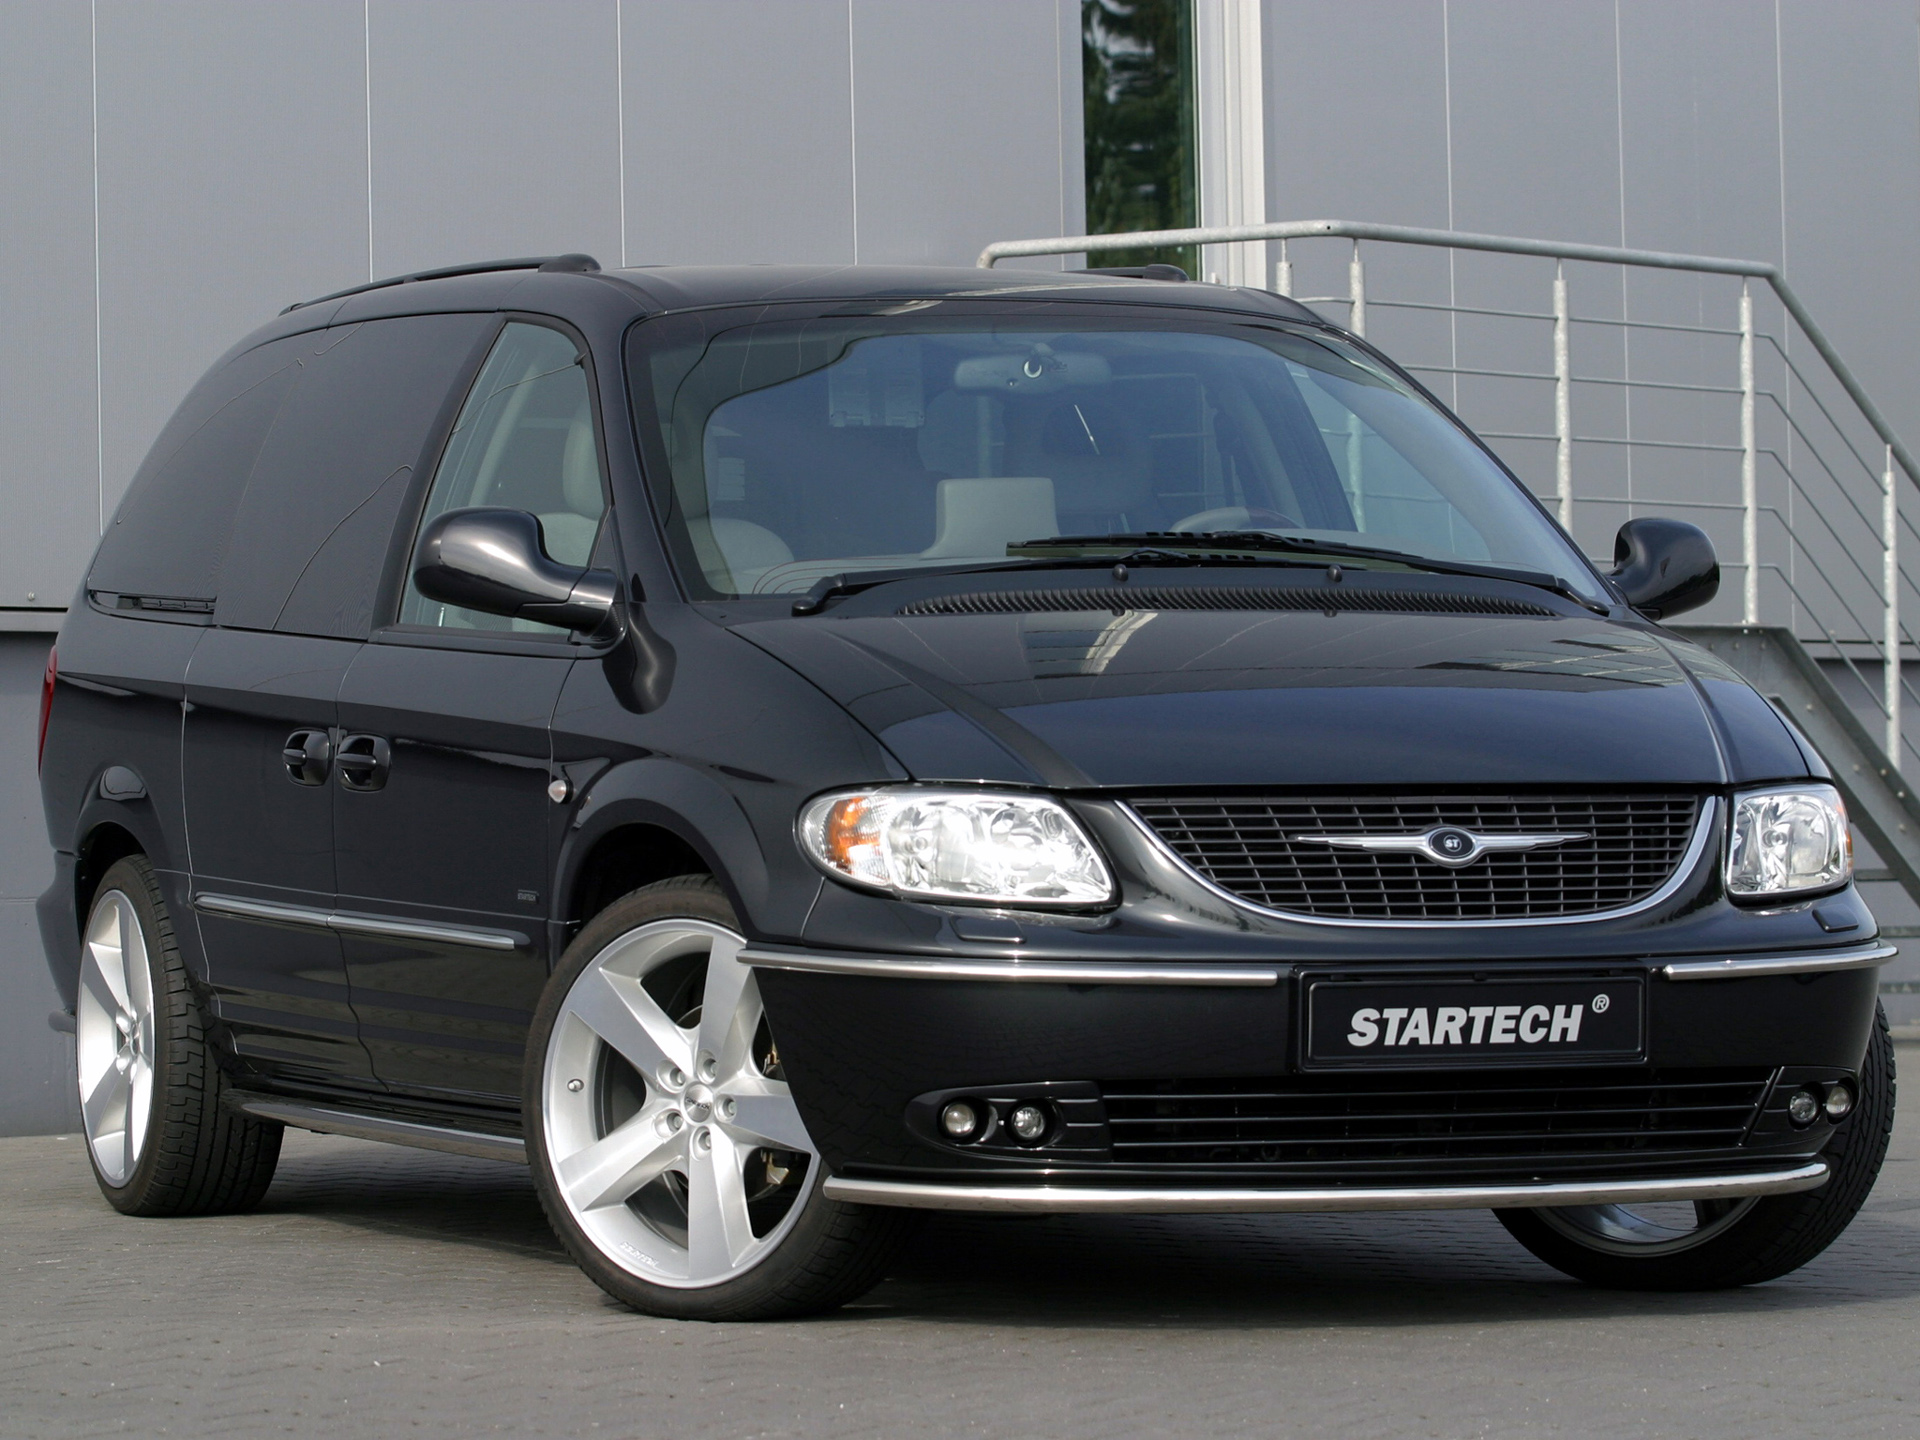 chrysler voyager 2000 - photo #25